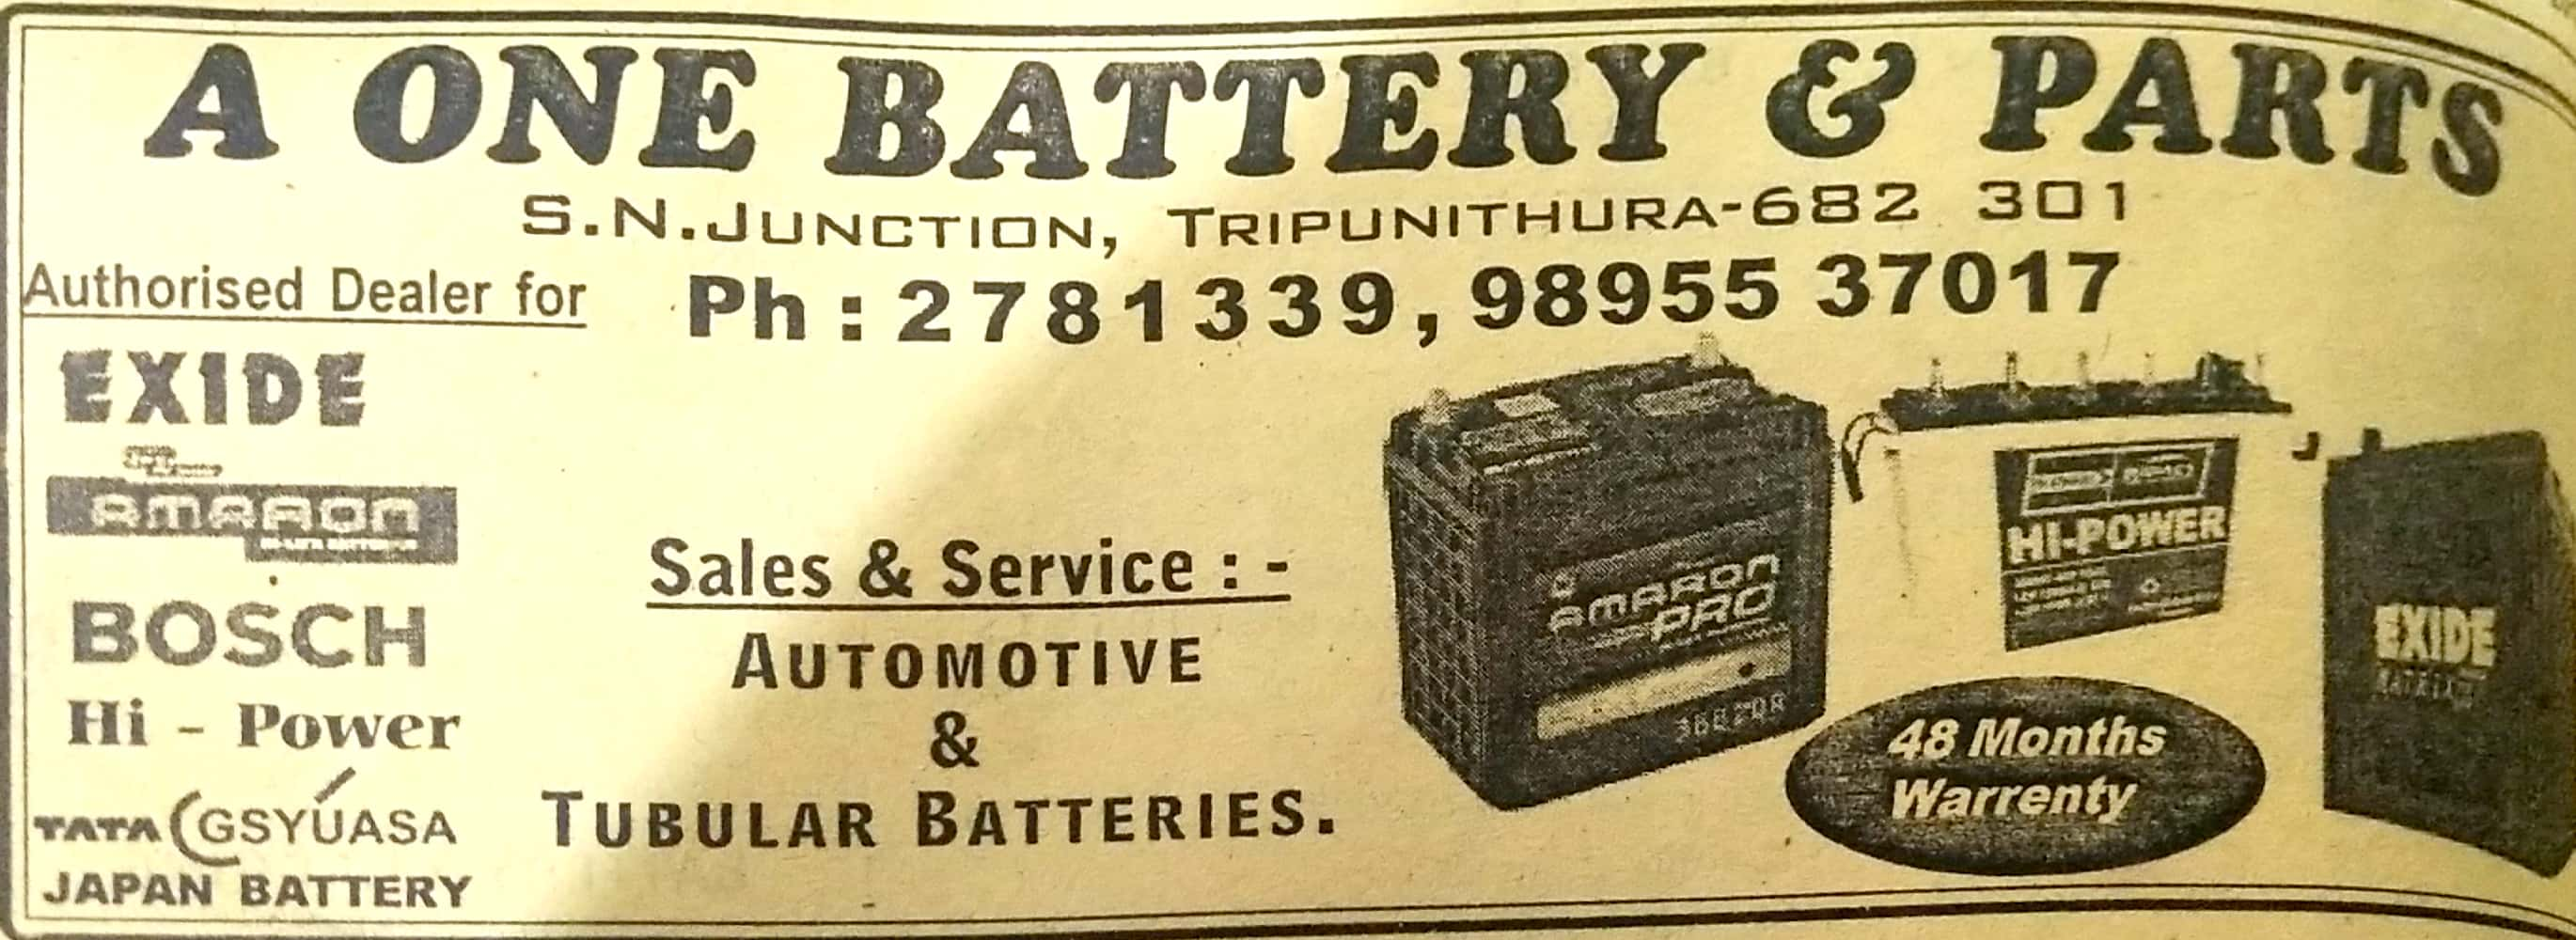 A ONE BATTERY & PARTS ERNAKULAM, BATTERY & UPS,  service in Thrippunithura, Ernakulam